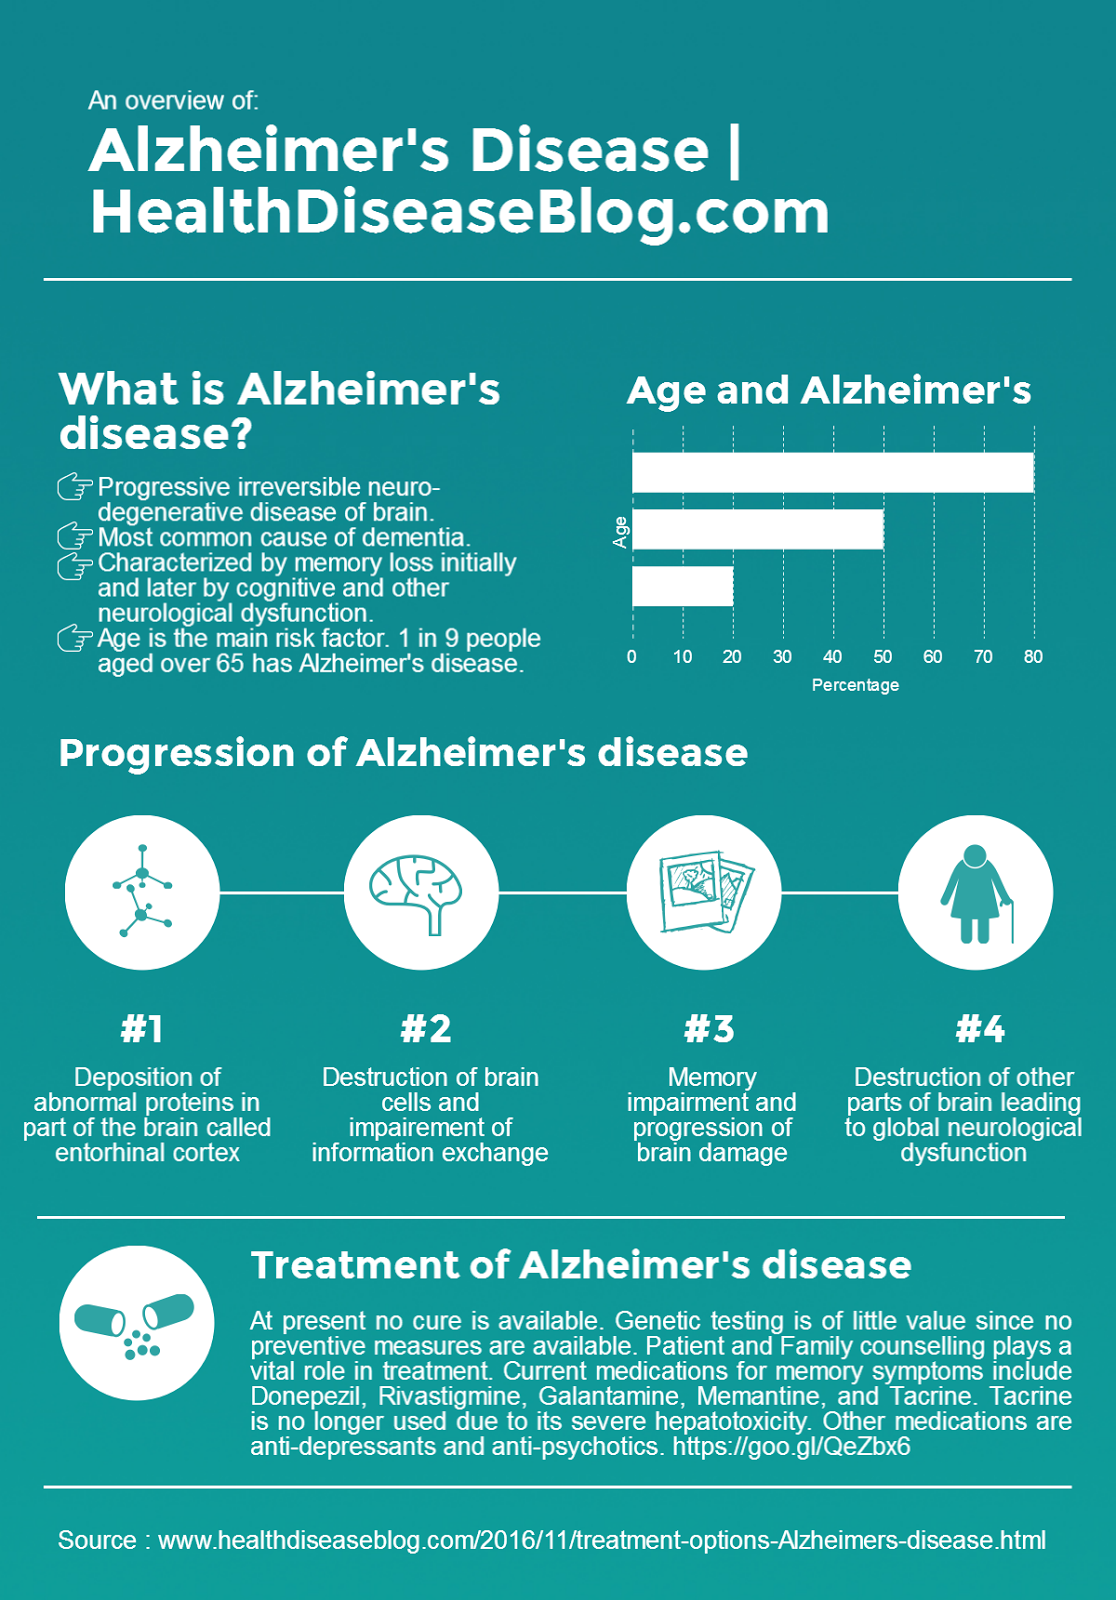 An overview of Alzheimer's disease